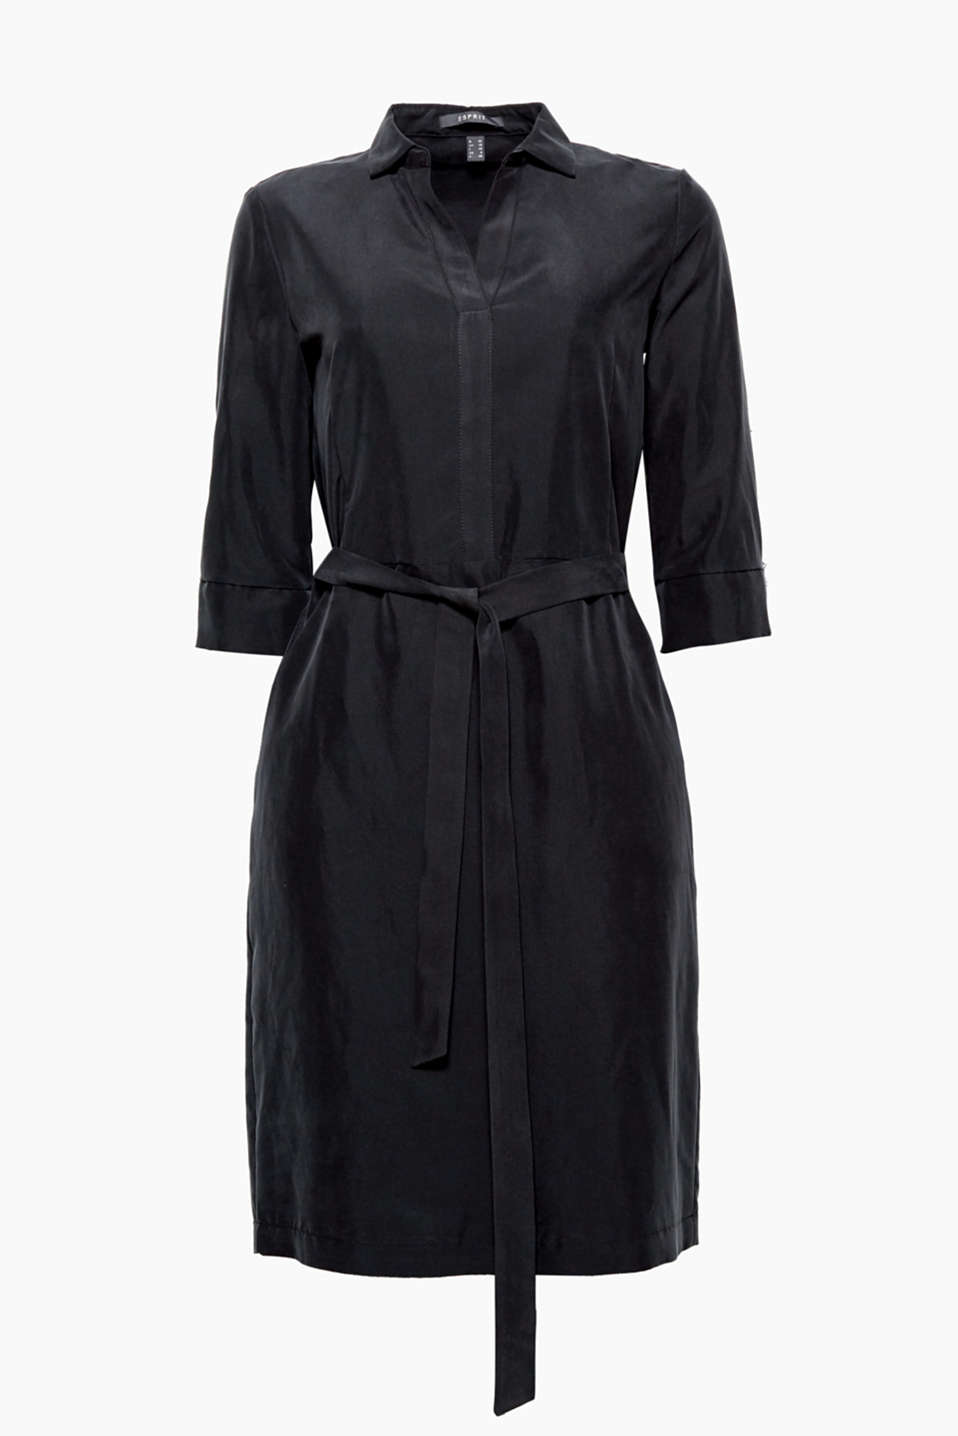 For the office or the city, this soft shirt blouse dress with a tie-around belt works for so many occasions!